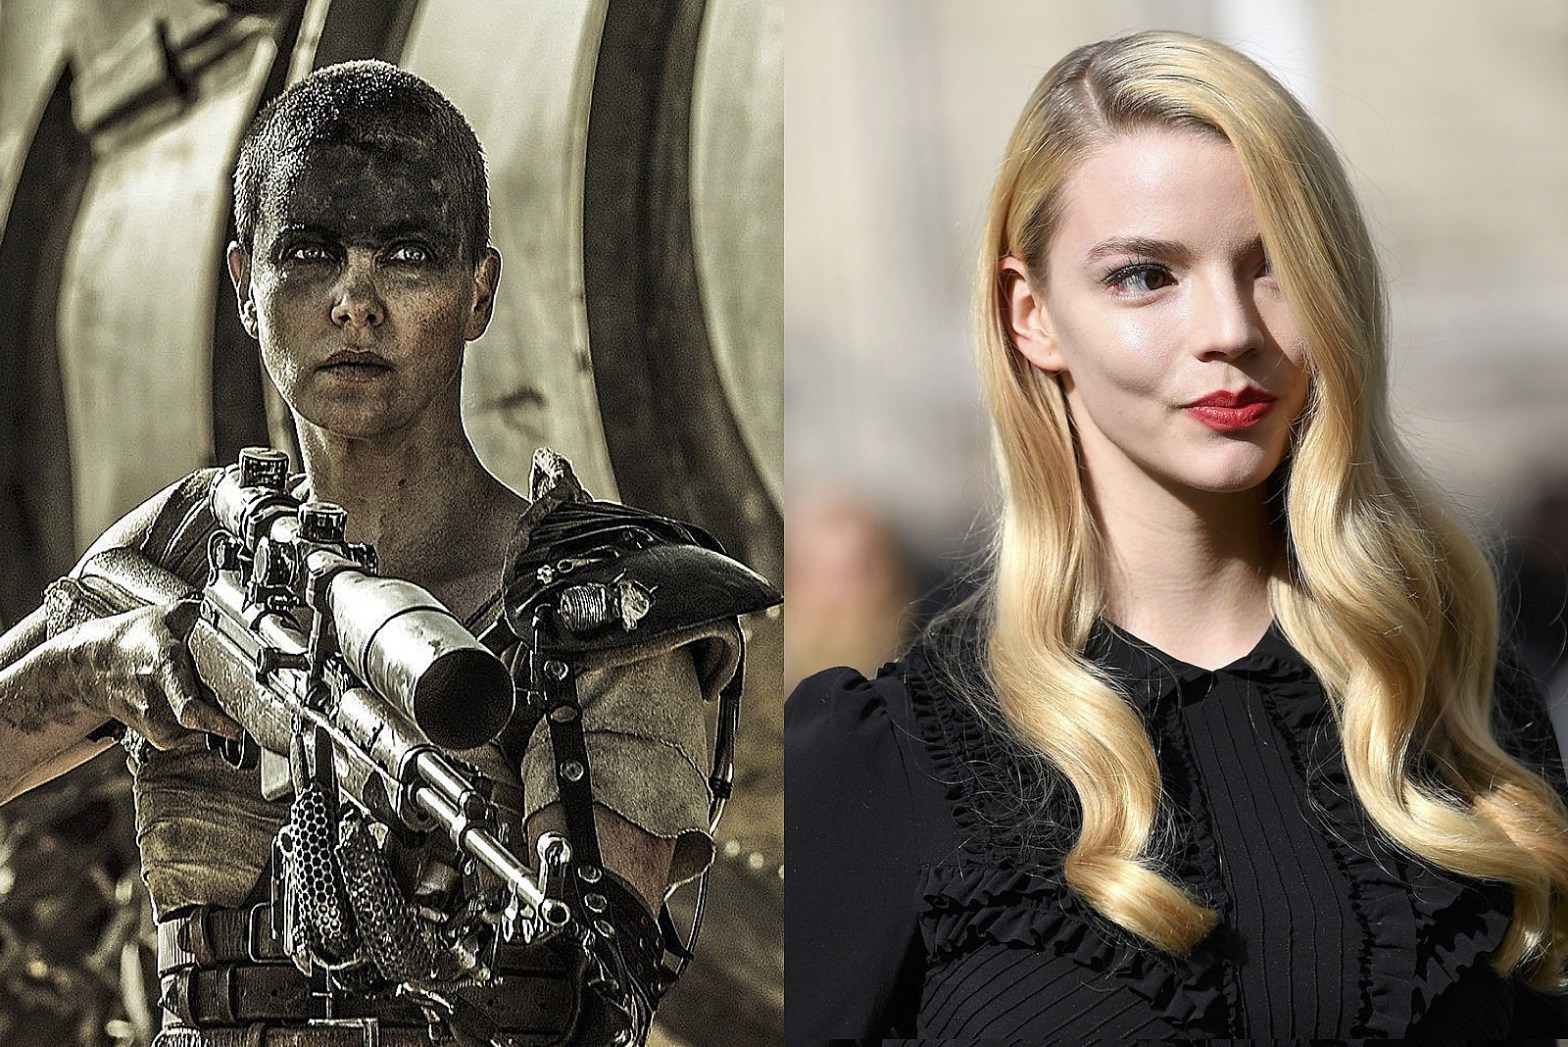 mad max fury road spinoff, furiosa, mad max furiosa, furiosa anya taylor joy, charliz theron, chris Hemsworth, fury road, mad max fury, mad fury road, max fury, mad max fury road, max max fury road, mad max 2, mad max movie, Madmax, mad max movies, mad max 2021, mad max cast, mad max 3, movieping.com,